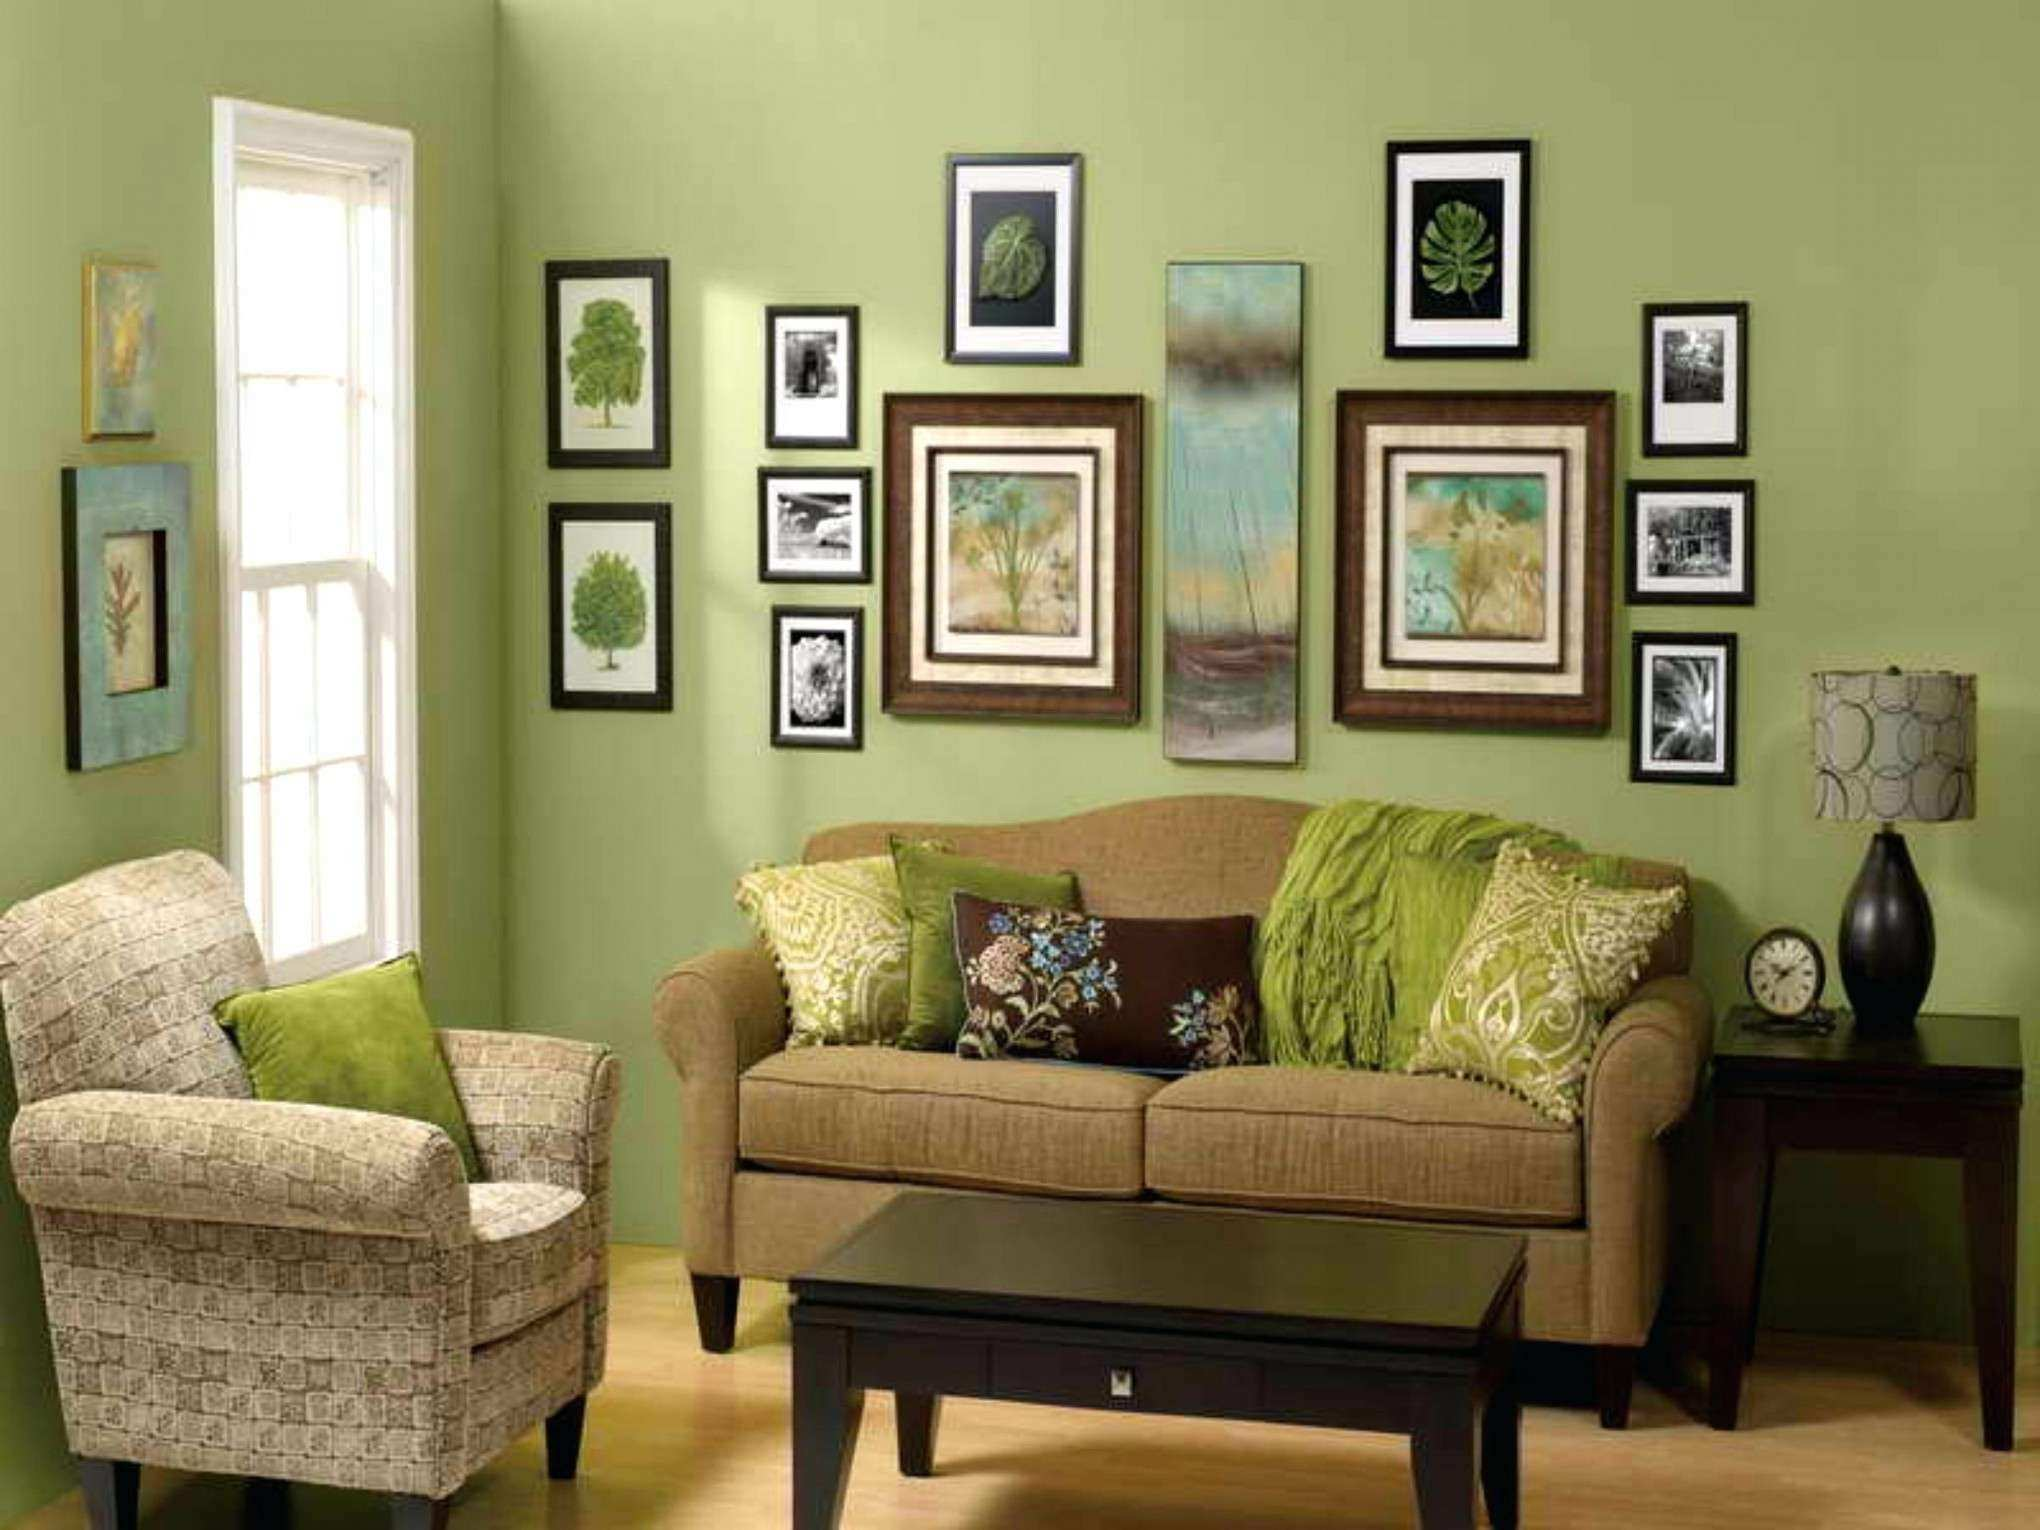 Wall Art for Living Room Unique Colorful Art Painting for Living